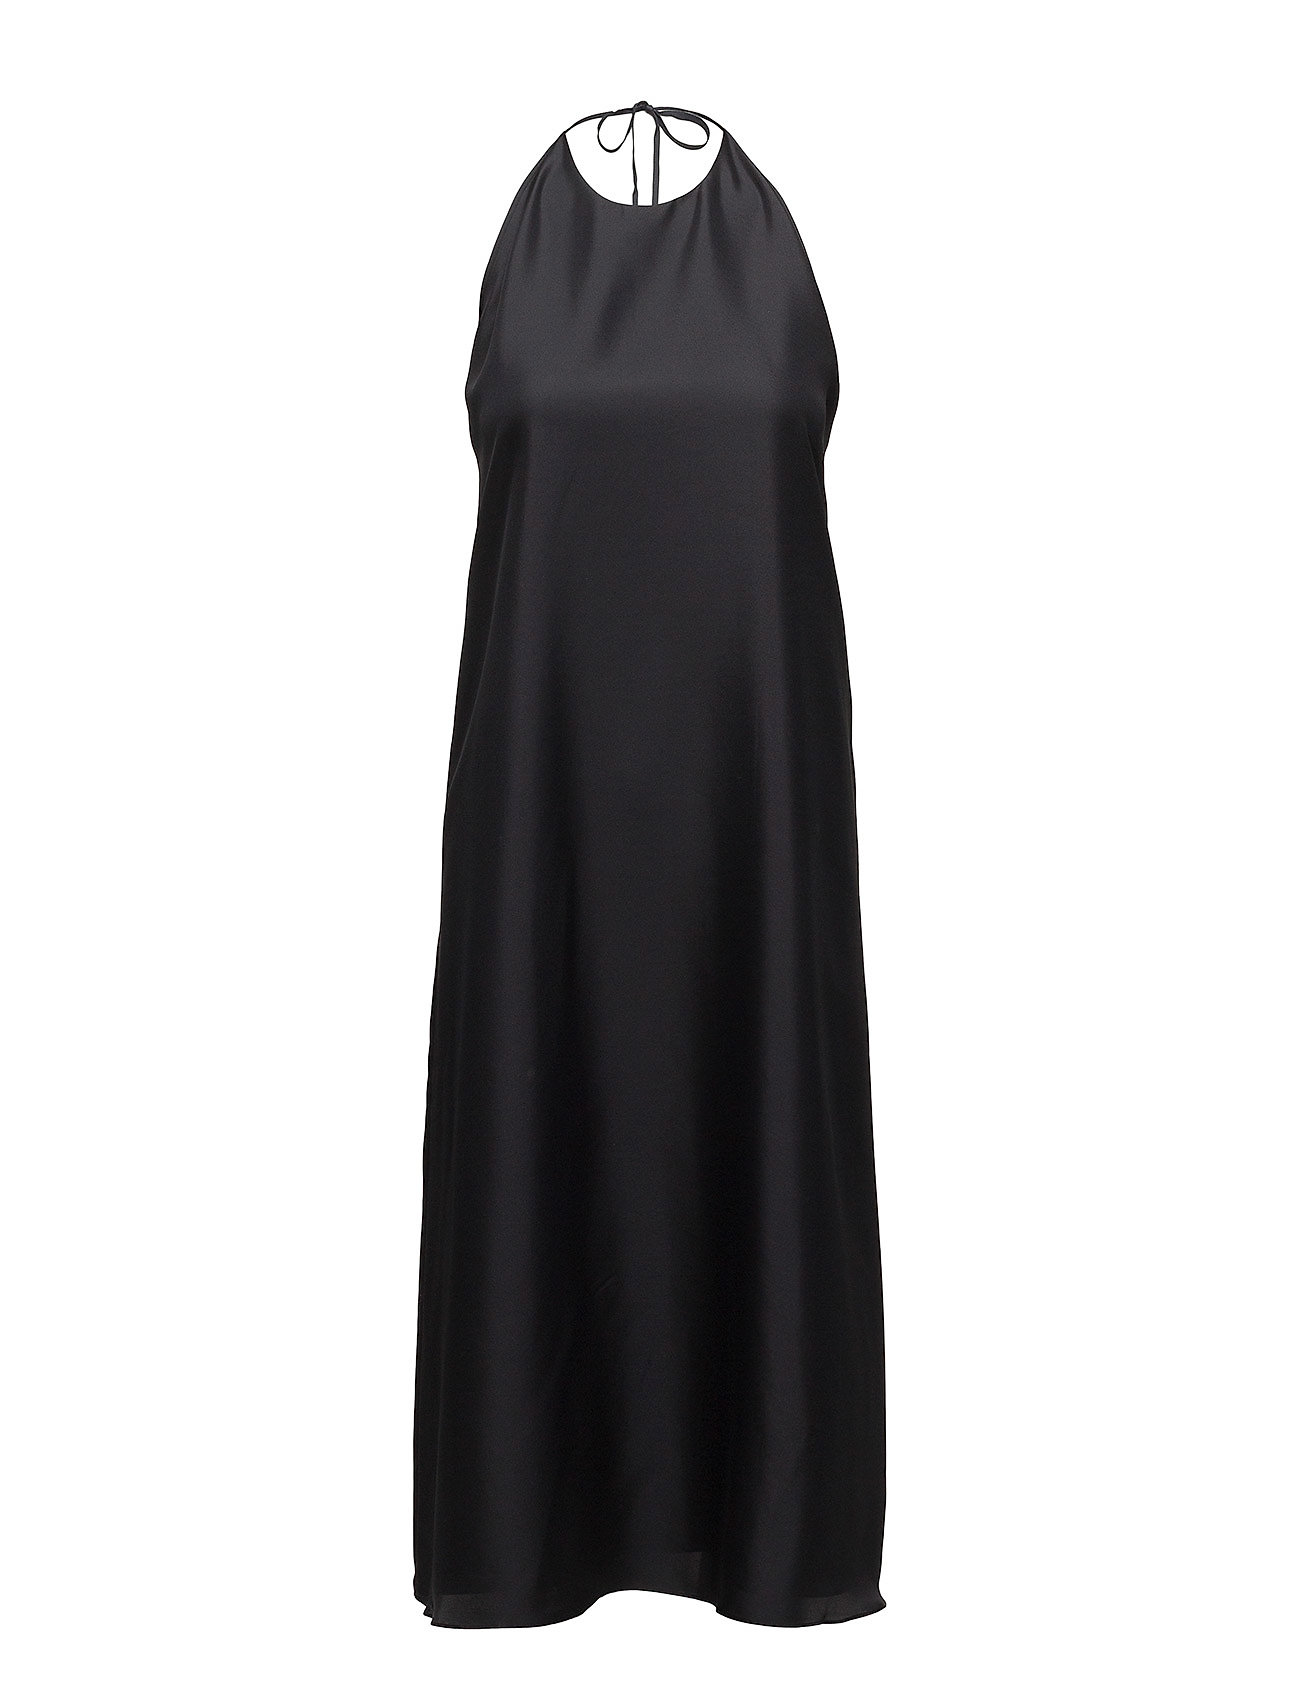 Filippa K Silk Halter Dress - BLACK